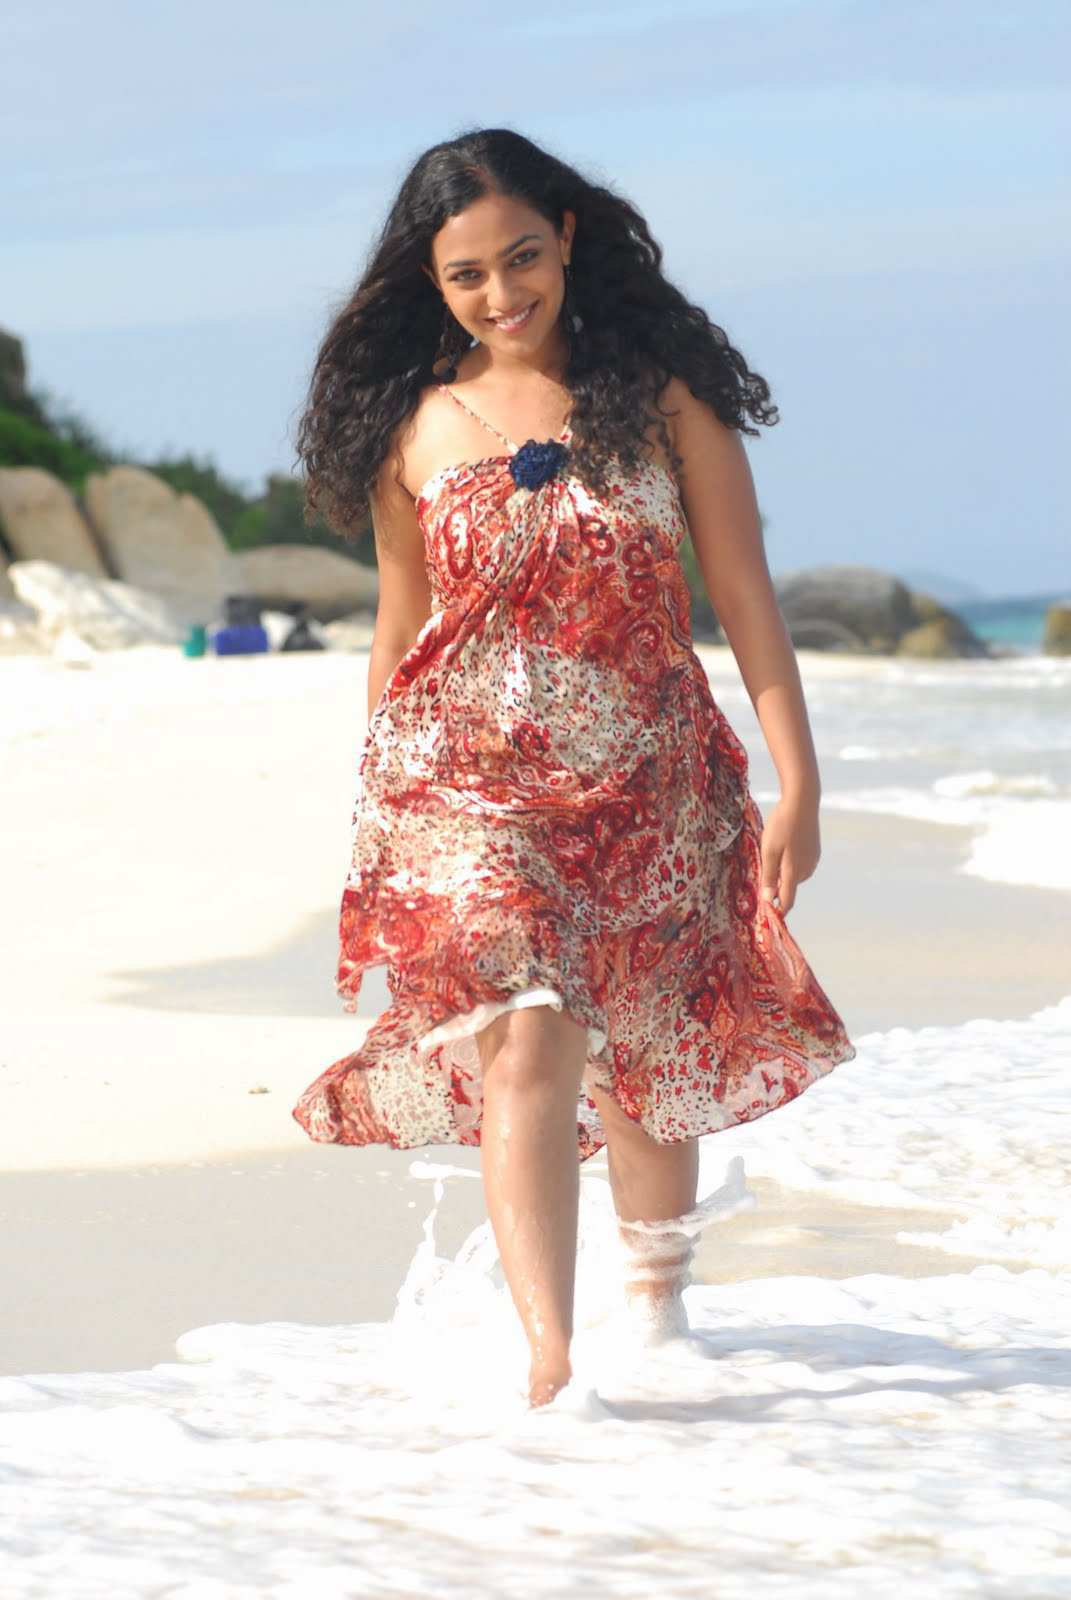 Kollywood Actress Nithya Menon Wet Hot Legs Show Photo shoot In Red Dress